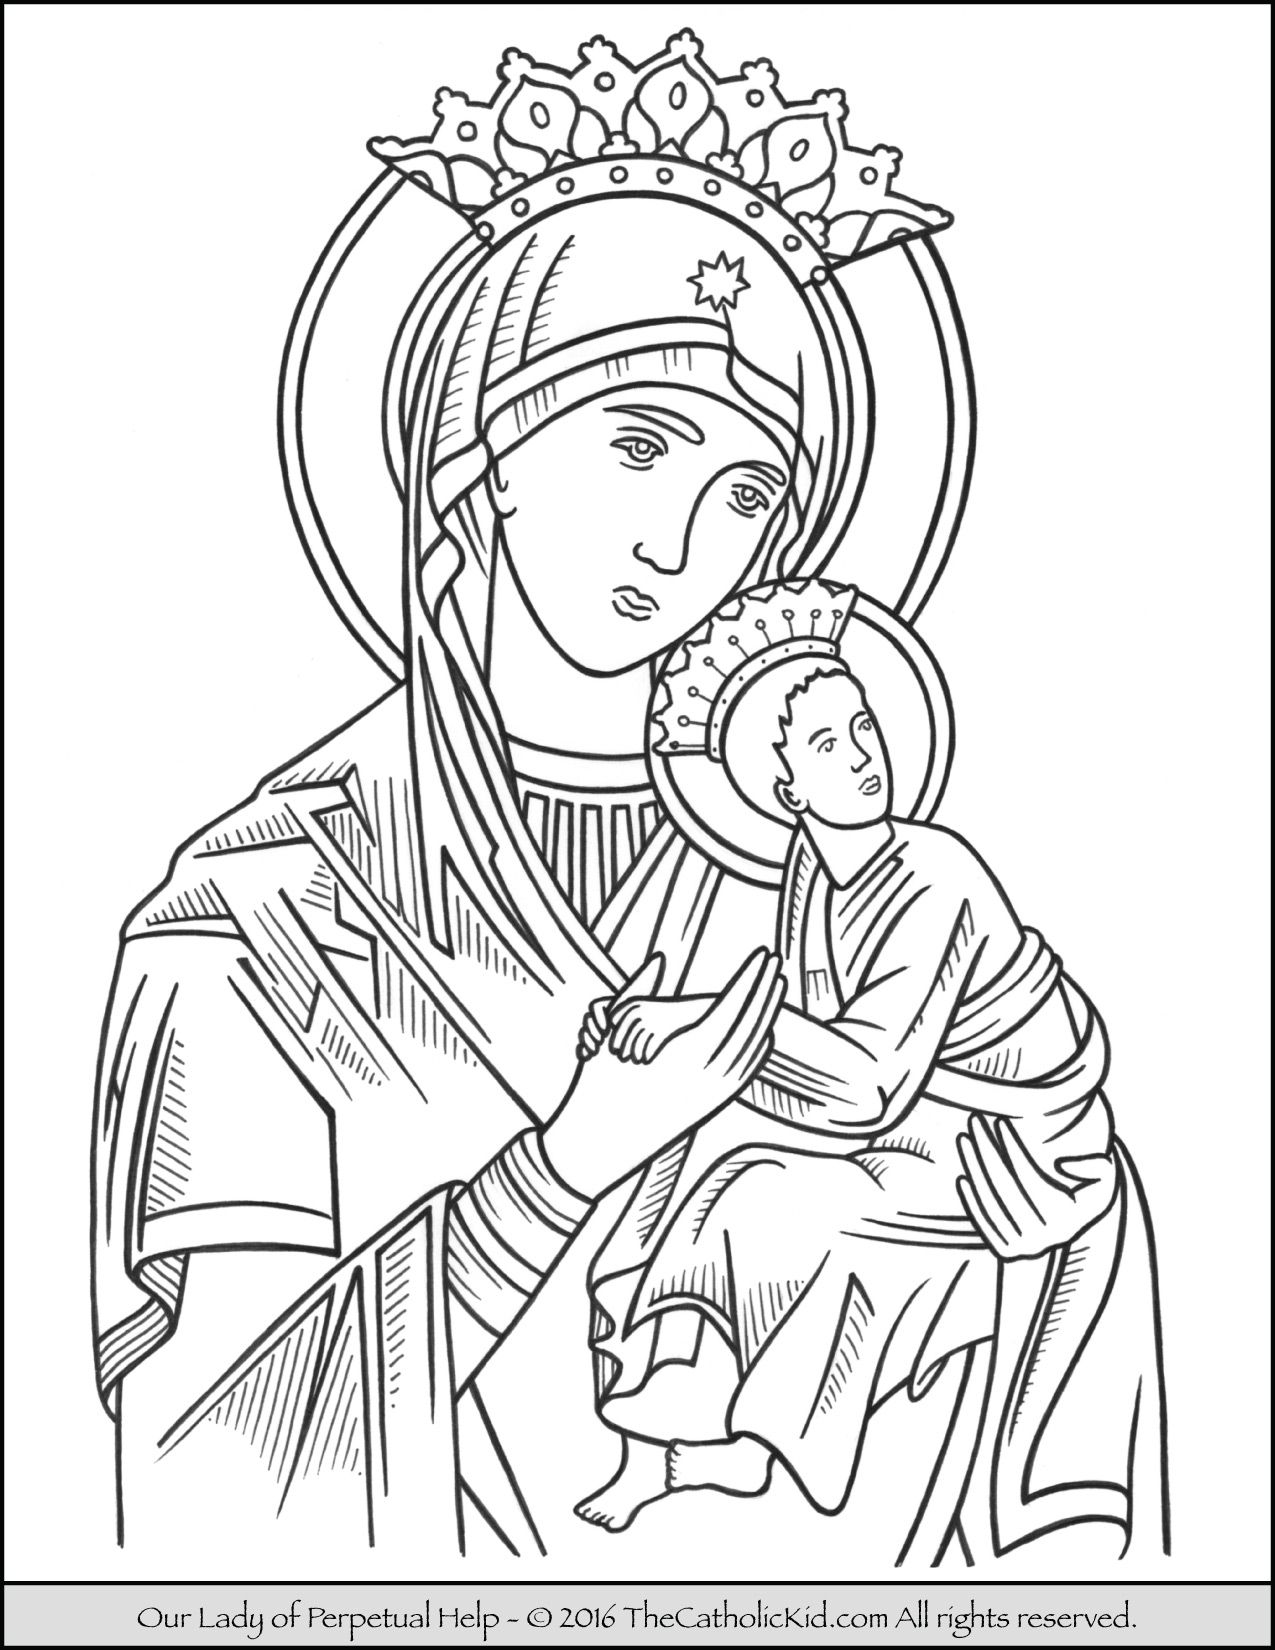 Our Lady of Perpetual Help Coloring Page | Catholic Coloring Pages ...